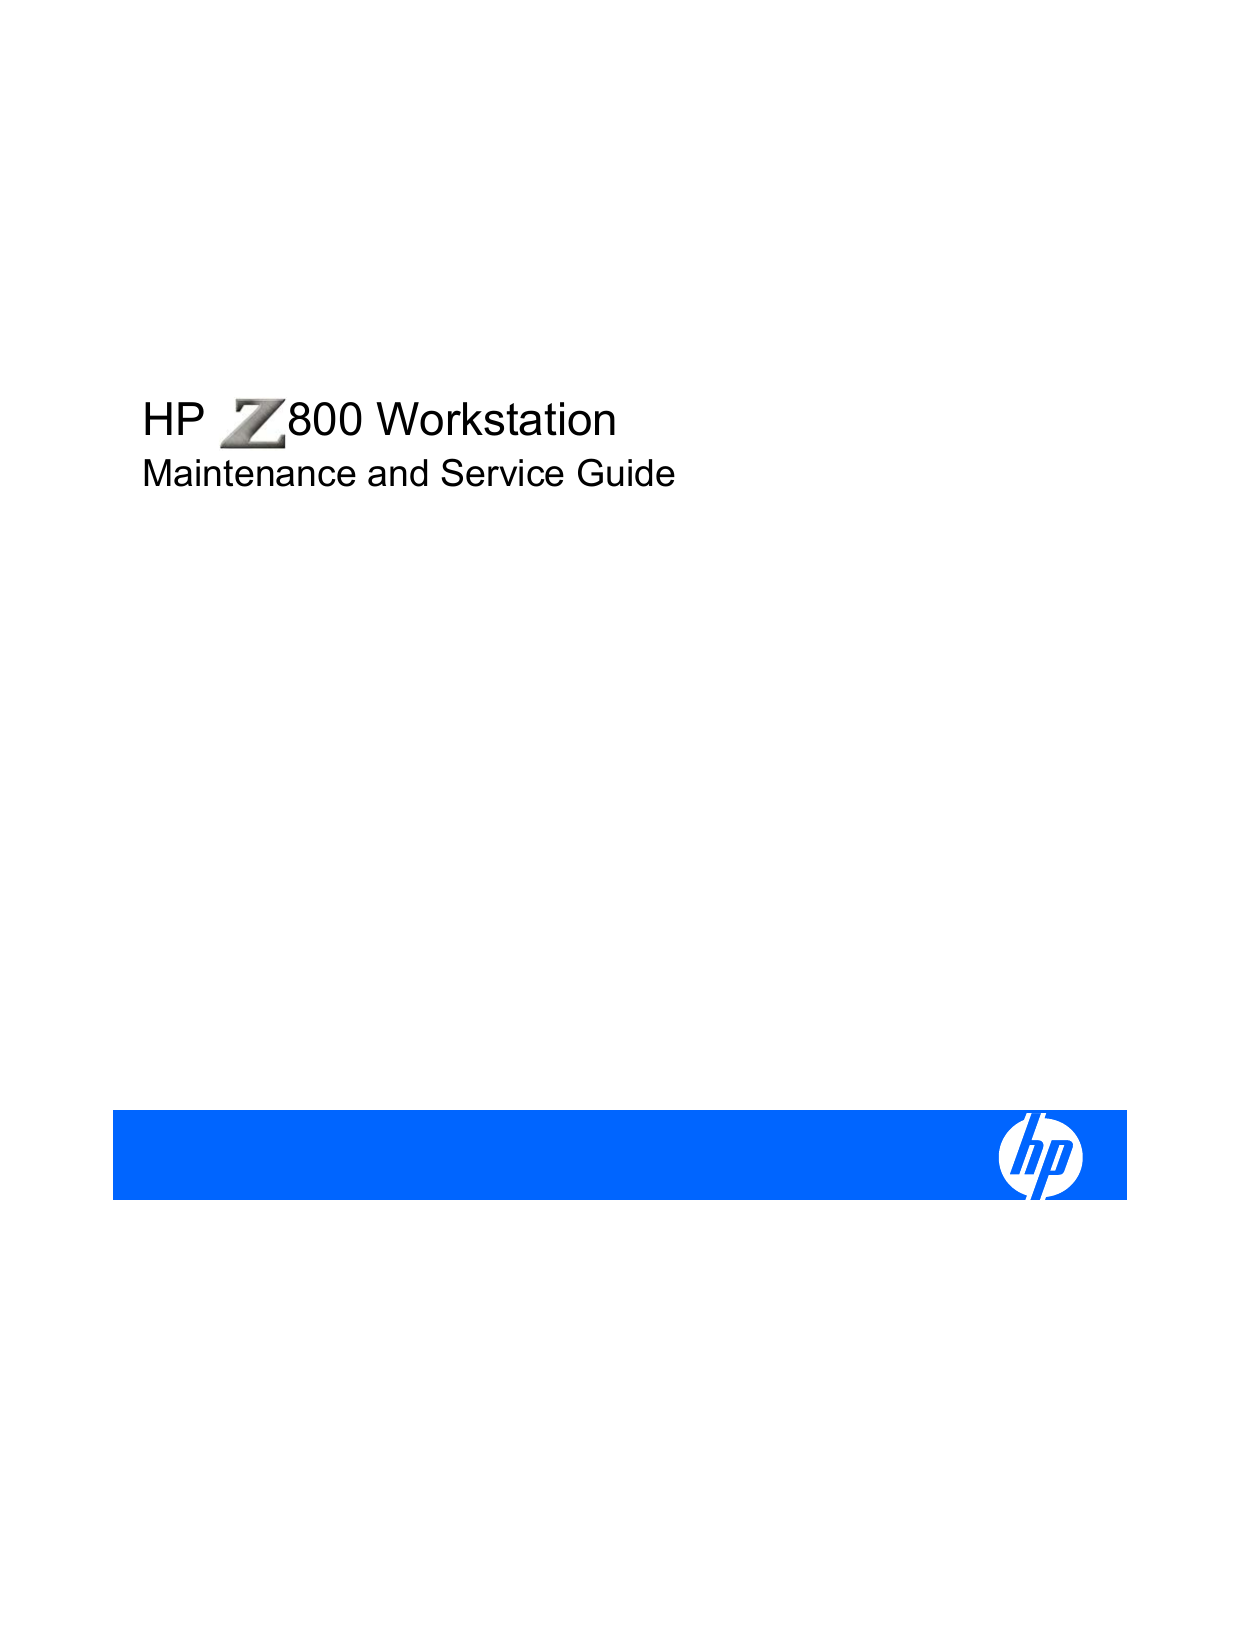 hp z800 workstation maintenance and service guide rh studylib net HP Z800 hp z800 maintenance and service guide